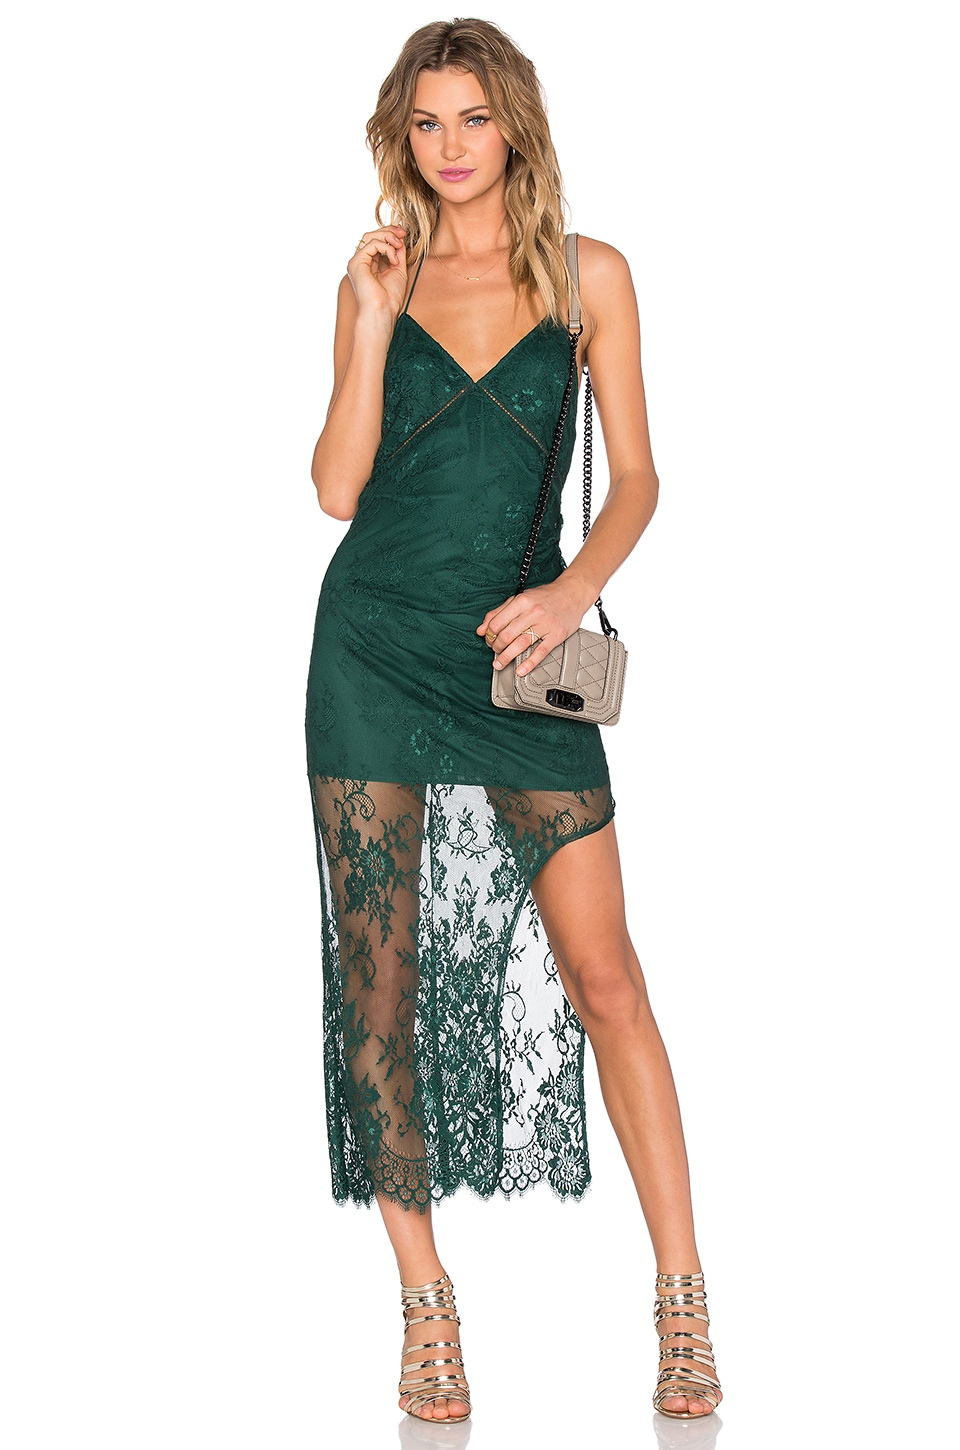 X by NBD Ellie Dress in Hunter Green